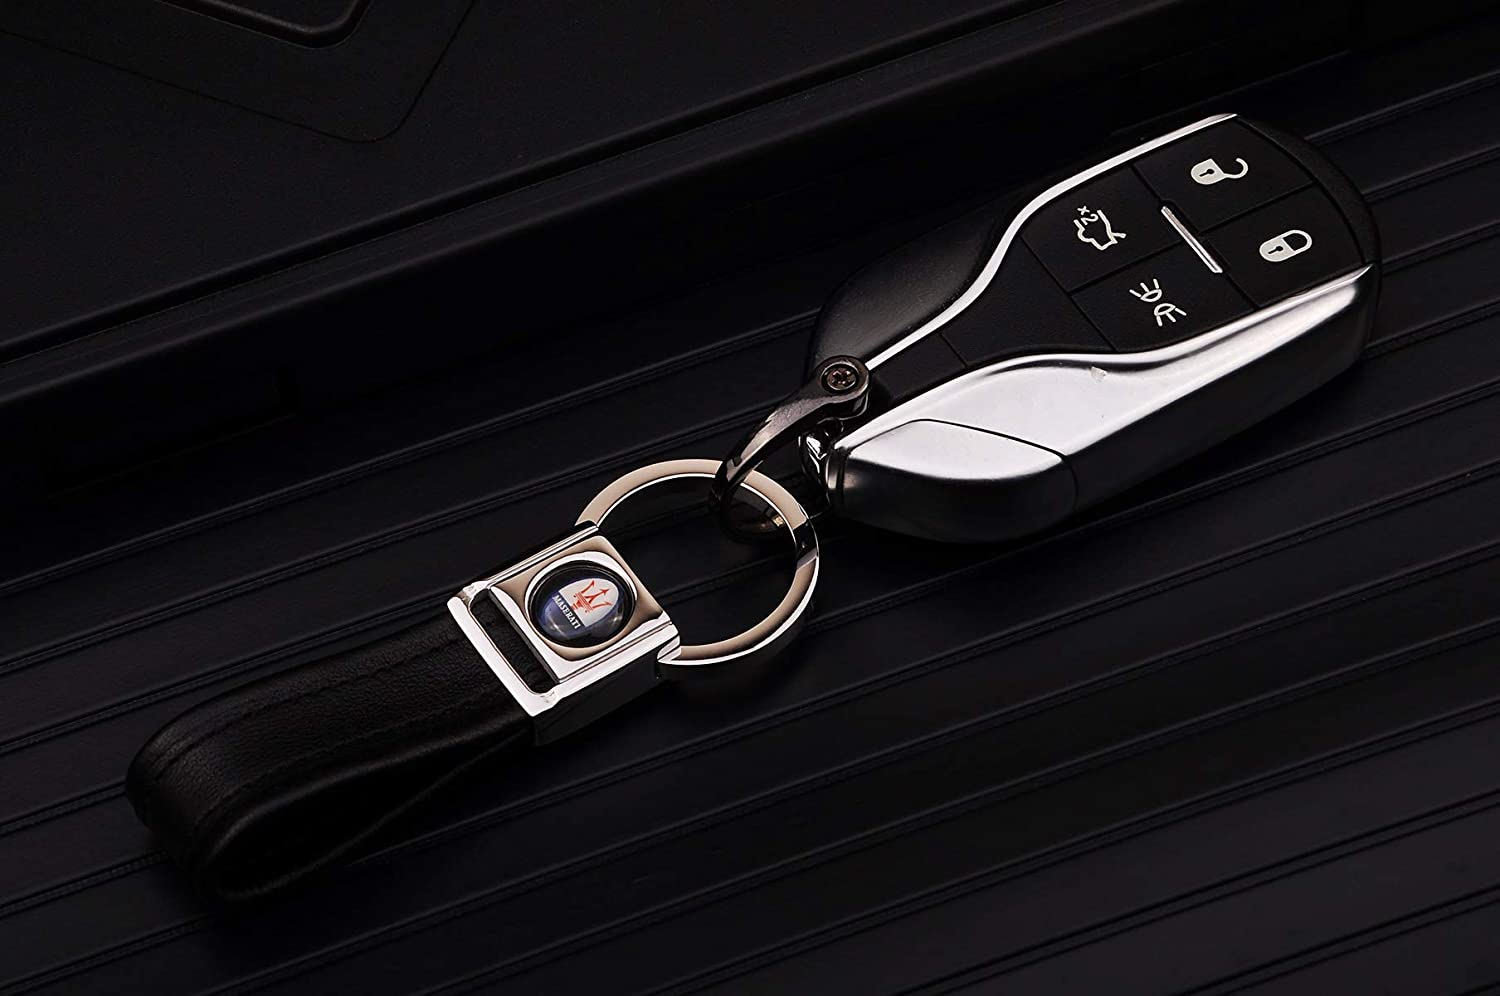 Cadtealir Highlight Stainless steel metal tab lock bucle inlaid with 18k golden chip with full grain nappa leather strap car key chain lanyard clips ring for Renault for men woman accessories